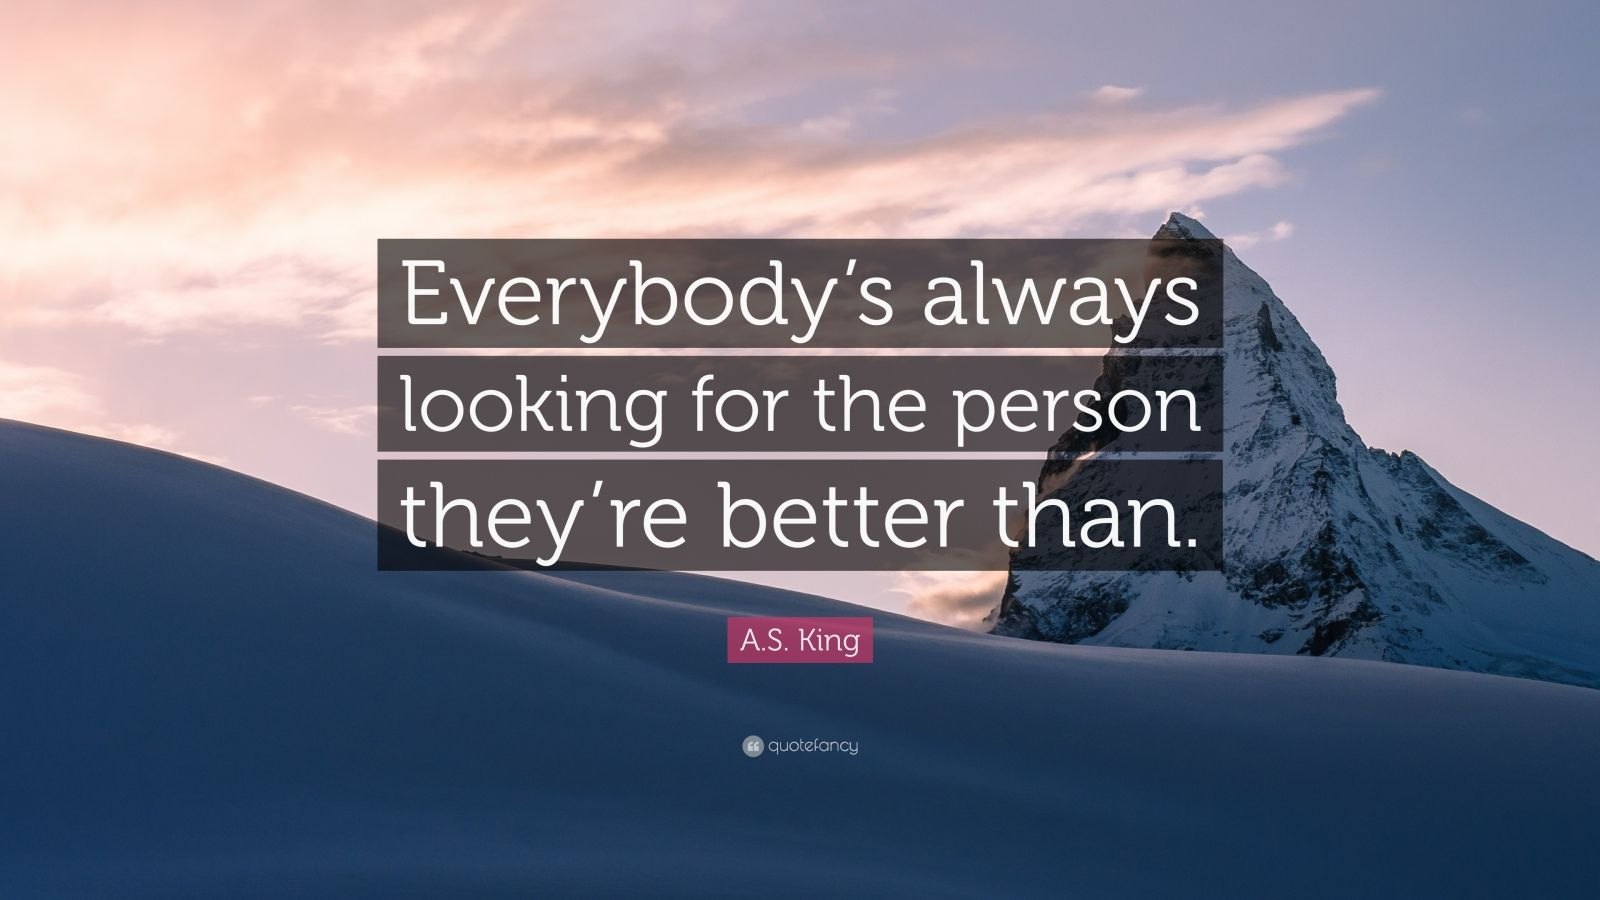 """A.S. King Quote: """"Everybody's always looking for the person they're better than."""""""